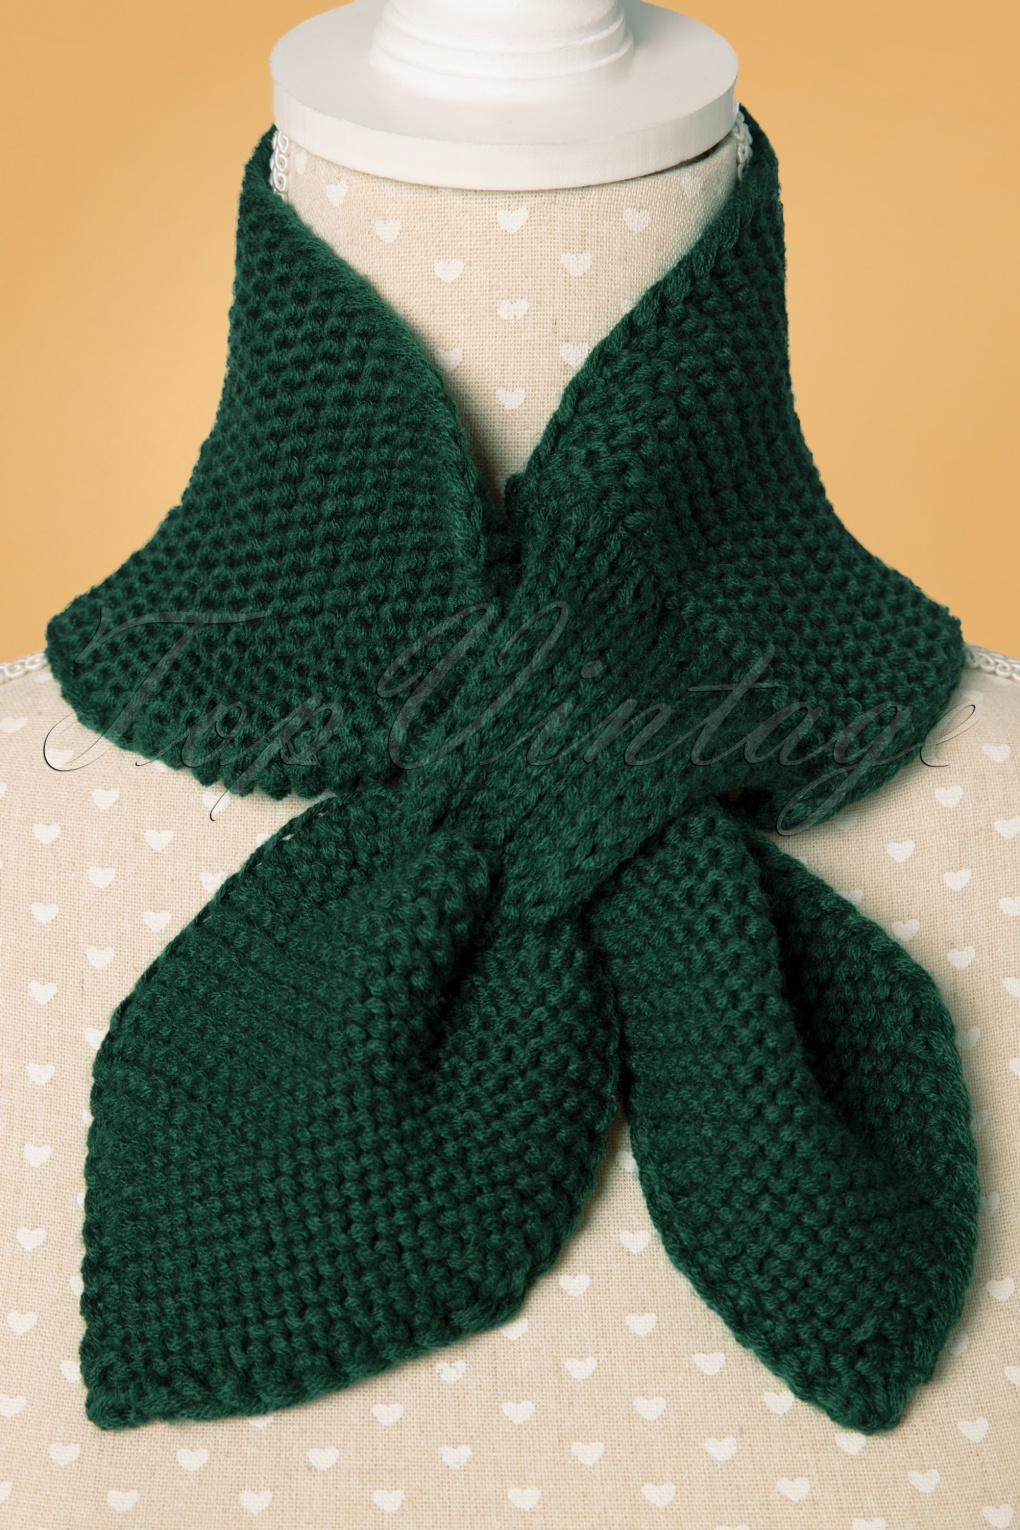 50s Hair Bandanna, Headband, Scarf, Flowers | 1950s Wigs 50s Fru Fru Knitted Scarf in Forest Green £12.64 AT vintagedancer.com